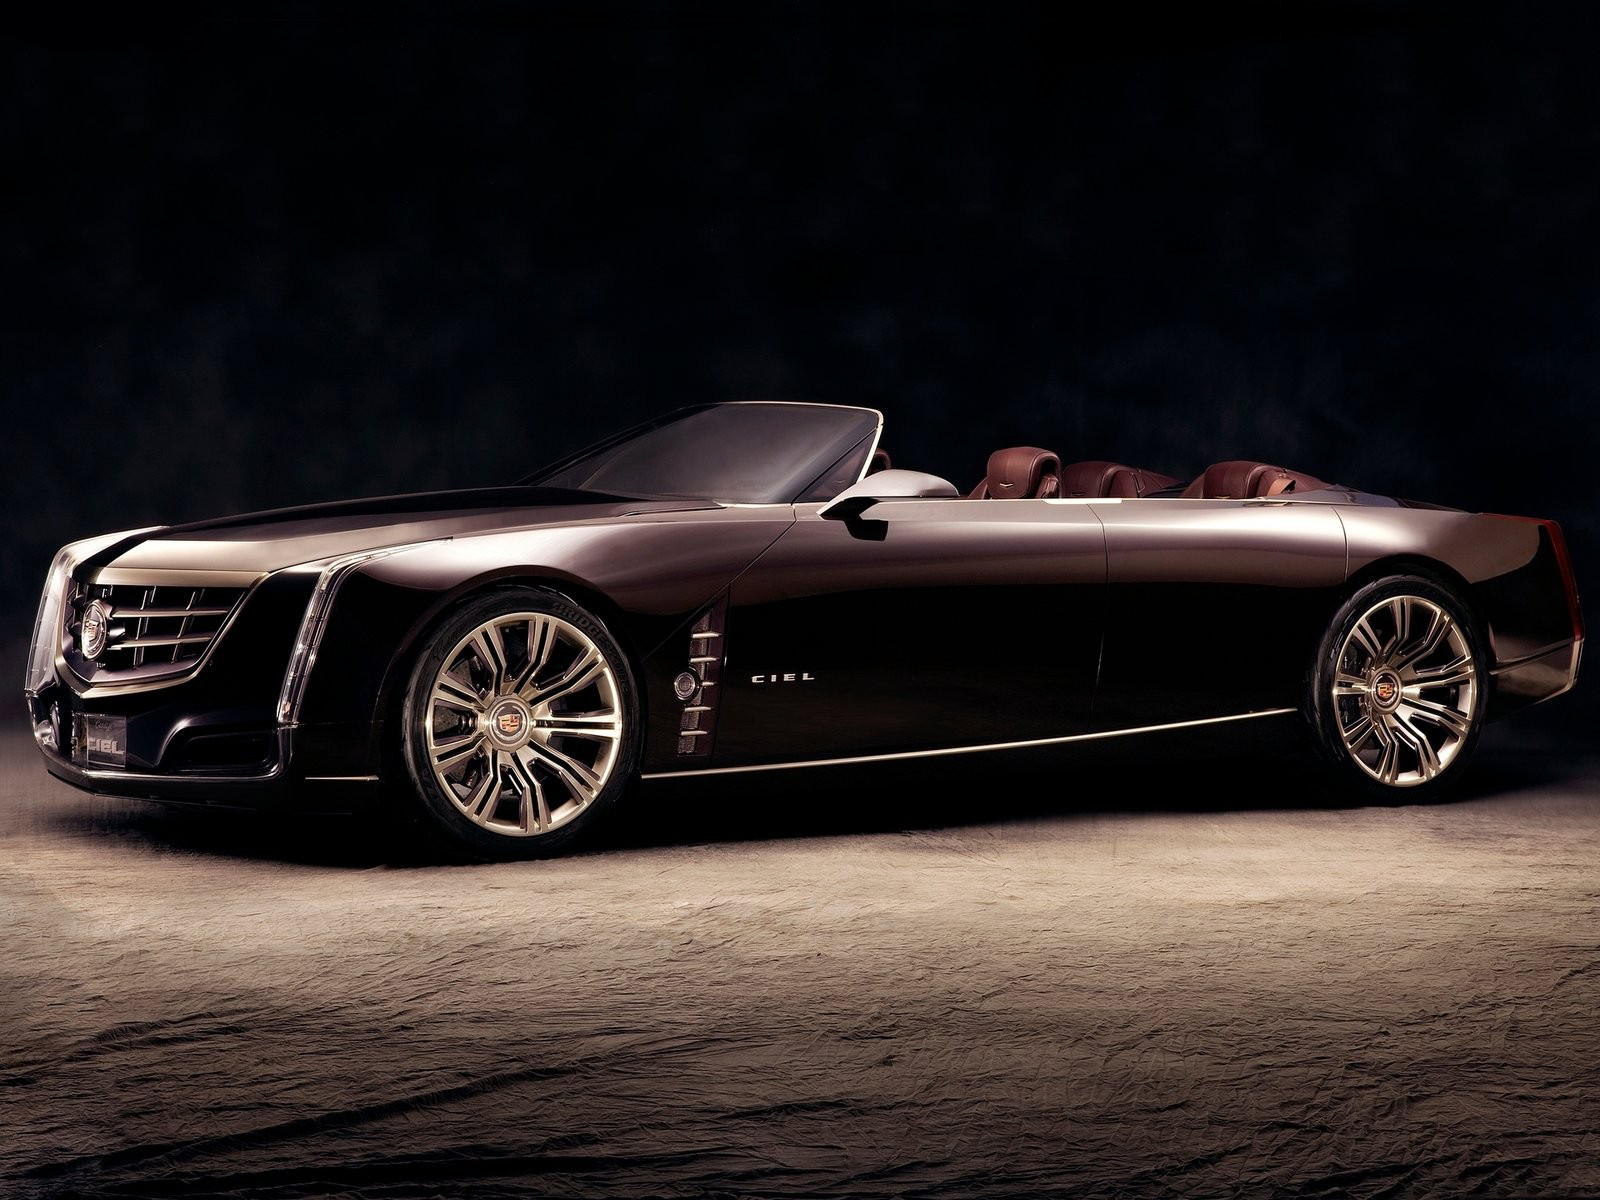 http://3.bp.blogspot.com/-g1fXULJecEE/ToS0Sq24zQI/AAAAAAAABb4/u8t84UzIPi0/s1600/Cadillac_Ciel_Concept_Cars_HD_Wallpapers_BAckground_Vvallpaper.net.jpg